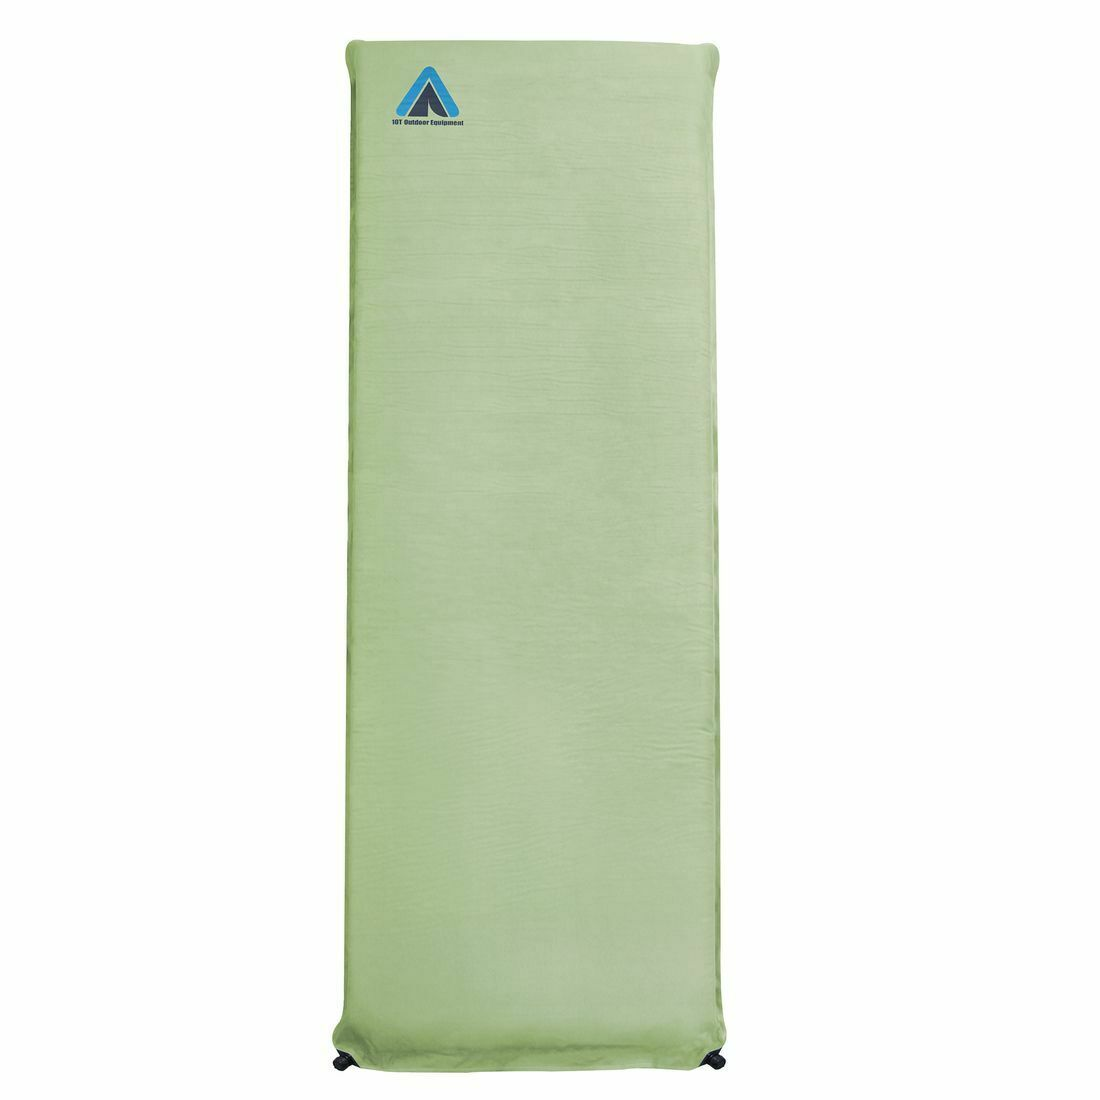 Bea 1000 self-inflating mat 200x66x10cm mattress with microfibre cover